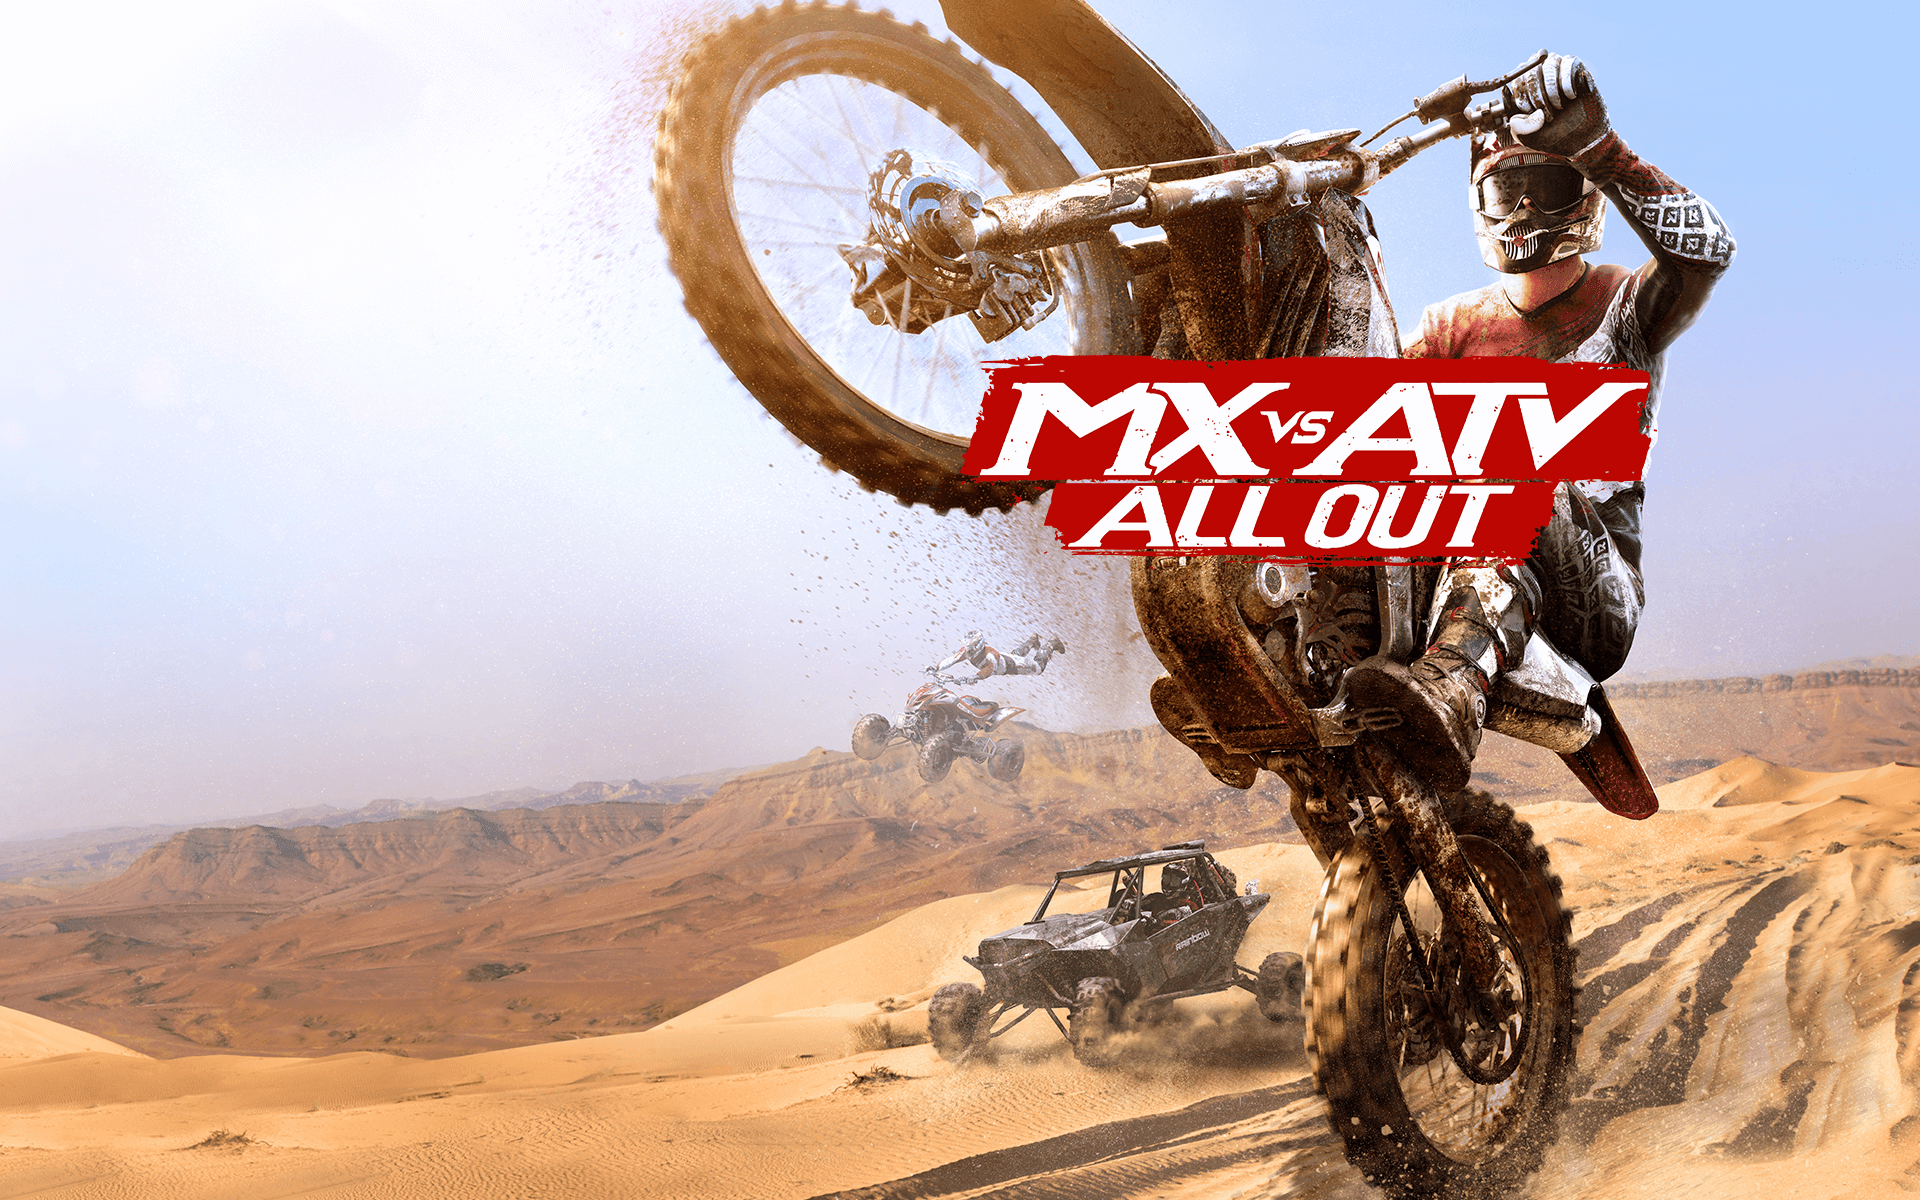 MX vs ATV All Out 2019 AMA Pro Motocross Championship Cover